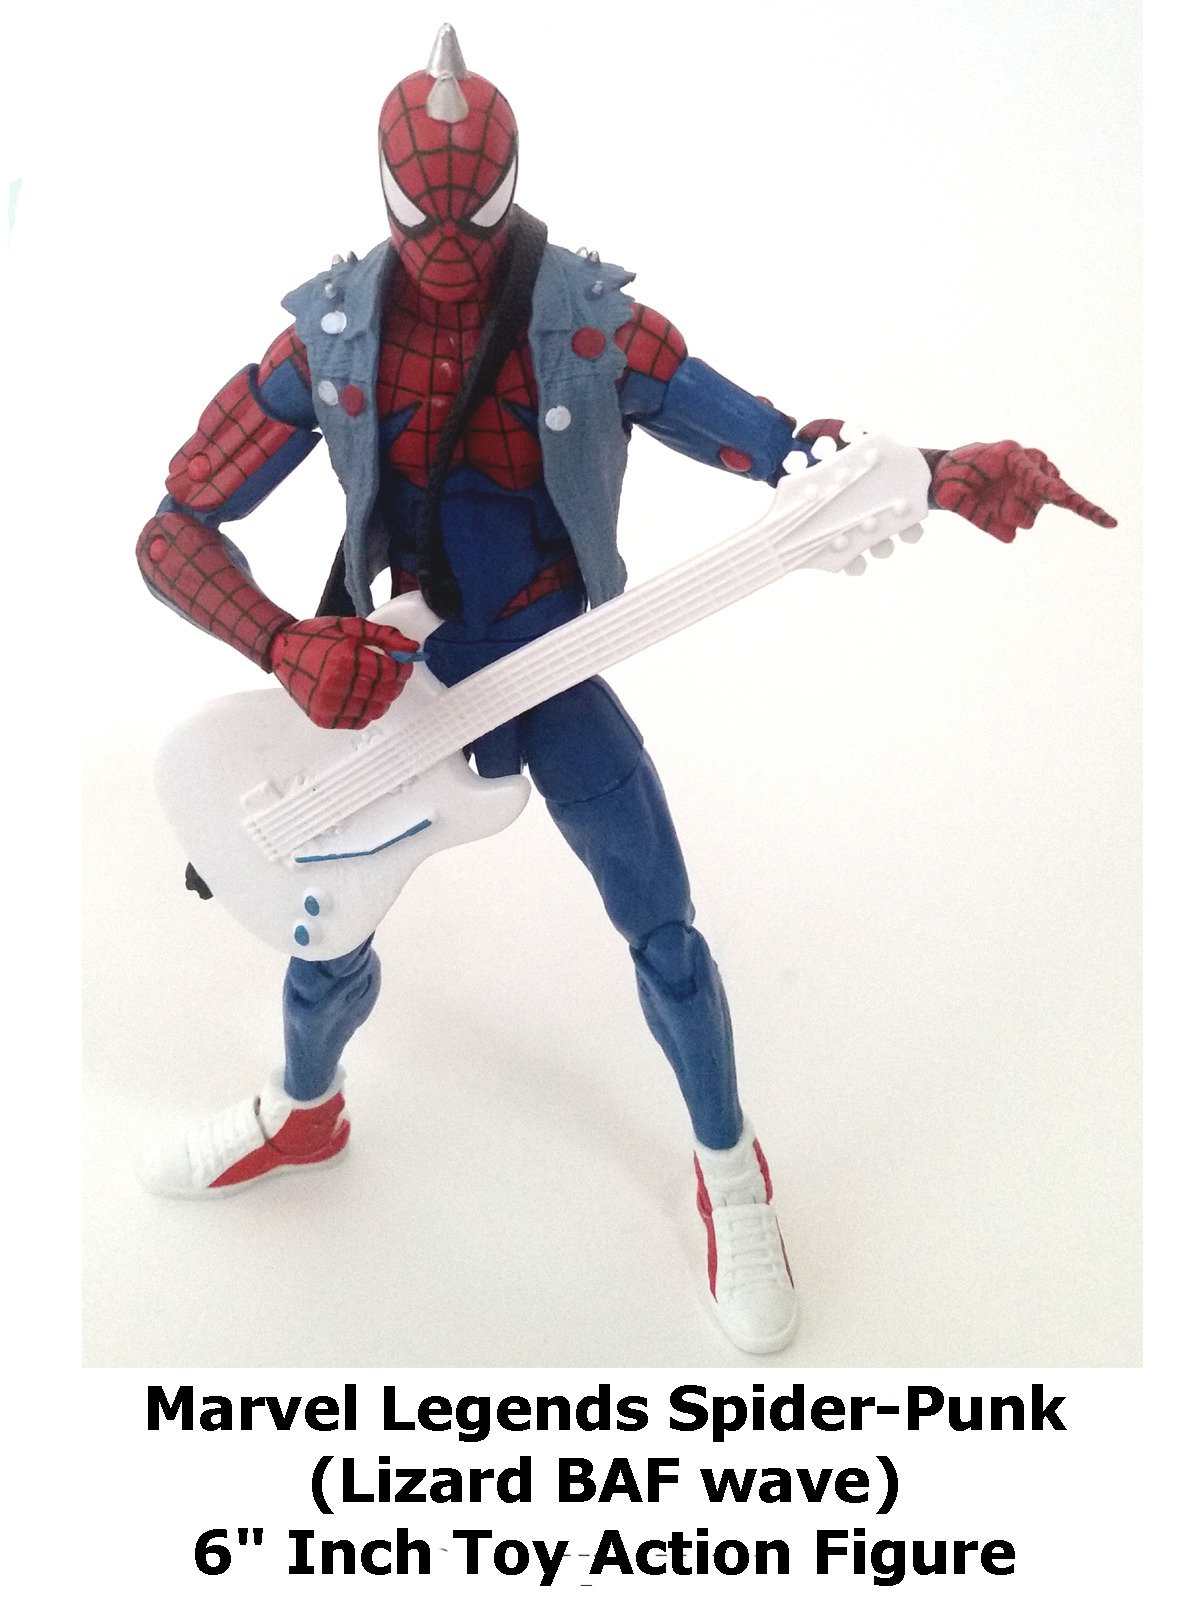 "Review: Marvel Legends Spider-Punk (Lizard BAF wave) 6"" Inch Toy Action Figure:"